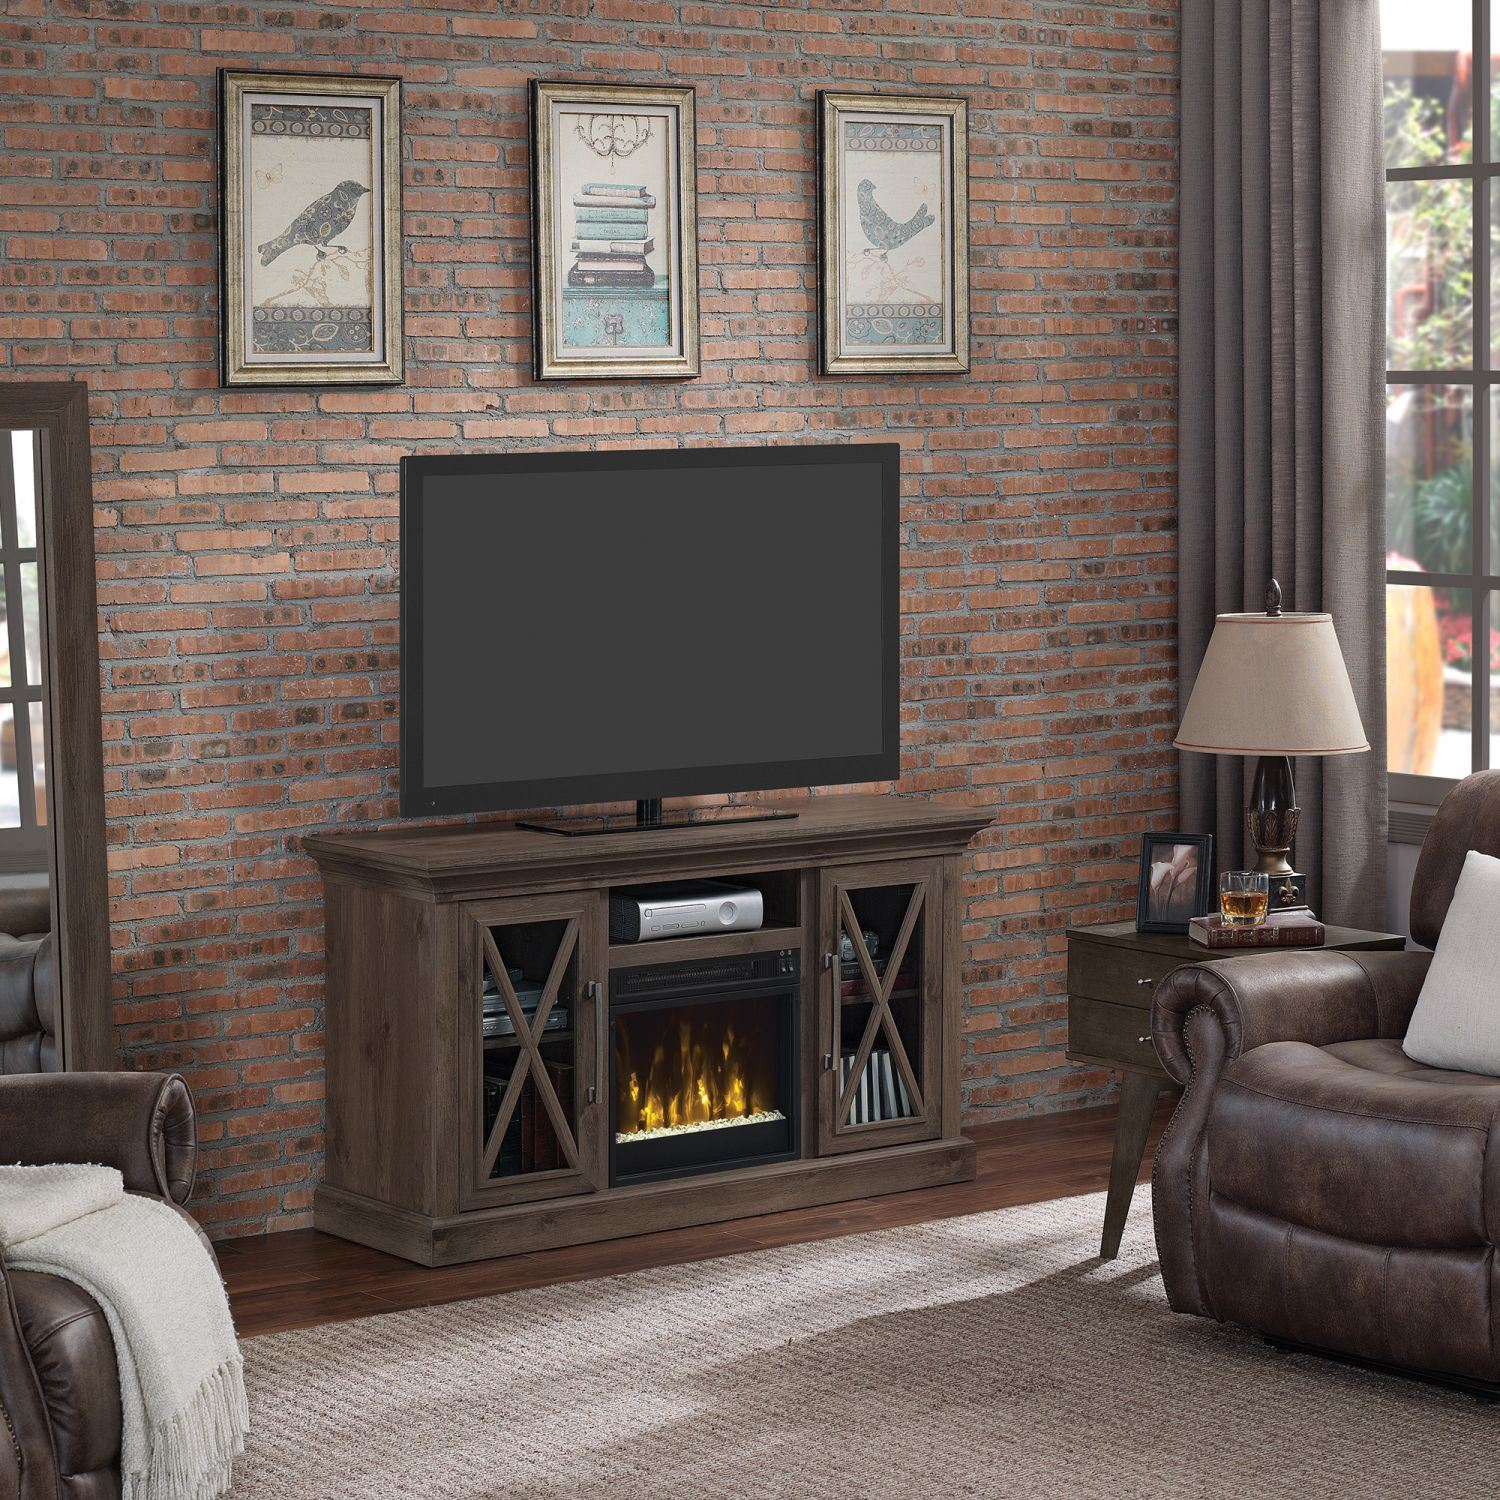 cottage grove 55 tv stand with fireplace d 18mm6075 pi14s classic flame twin star afw. Black Bedroom Furniture Sets. Home Design Ideas